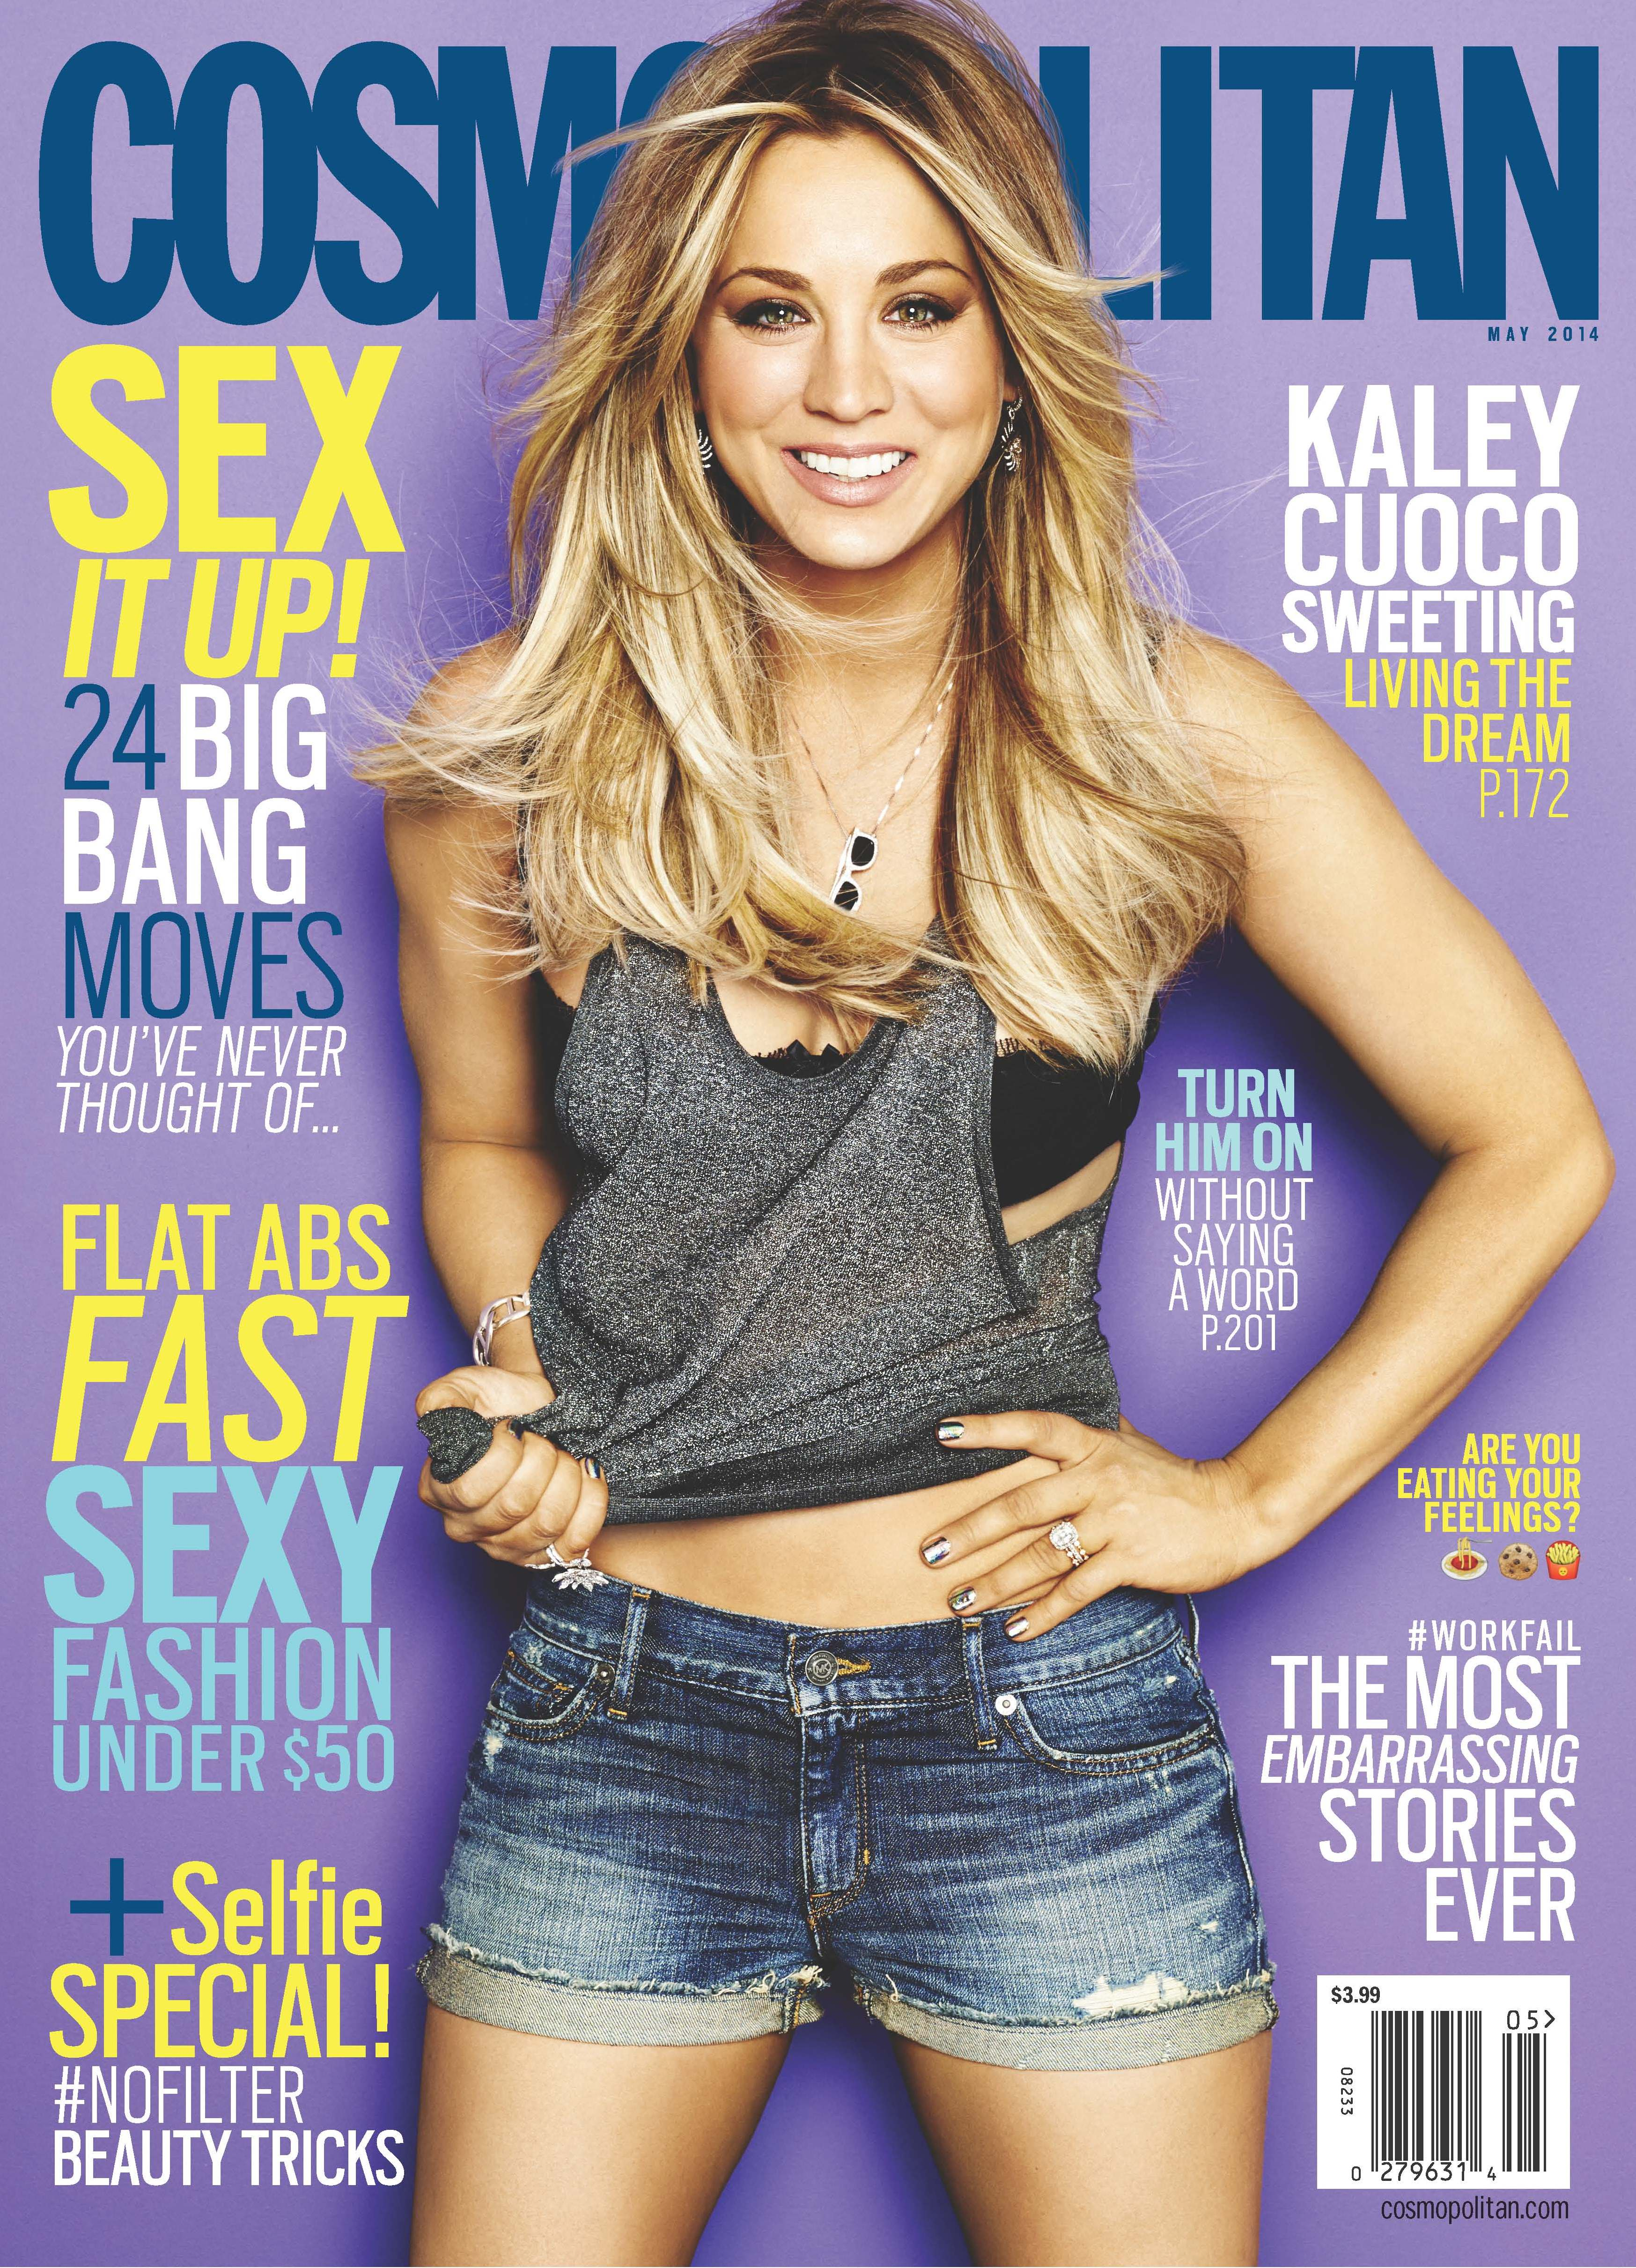 Kaley Cuoco-Sweeting admits she's 'insane' about social media comments, says breast implants were 'best decision' ever